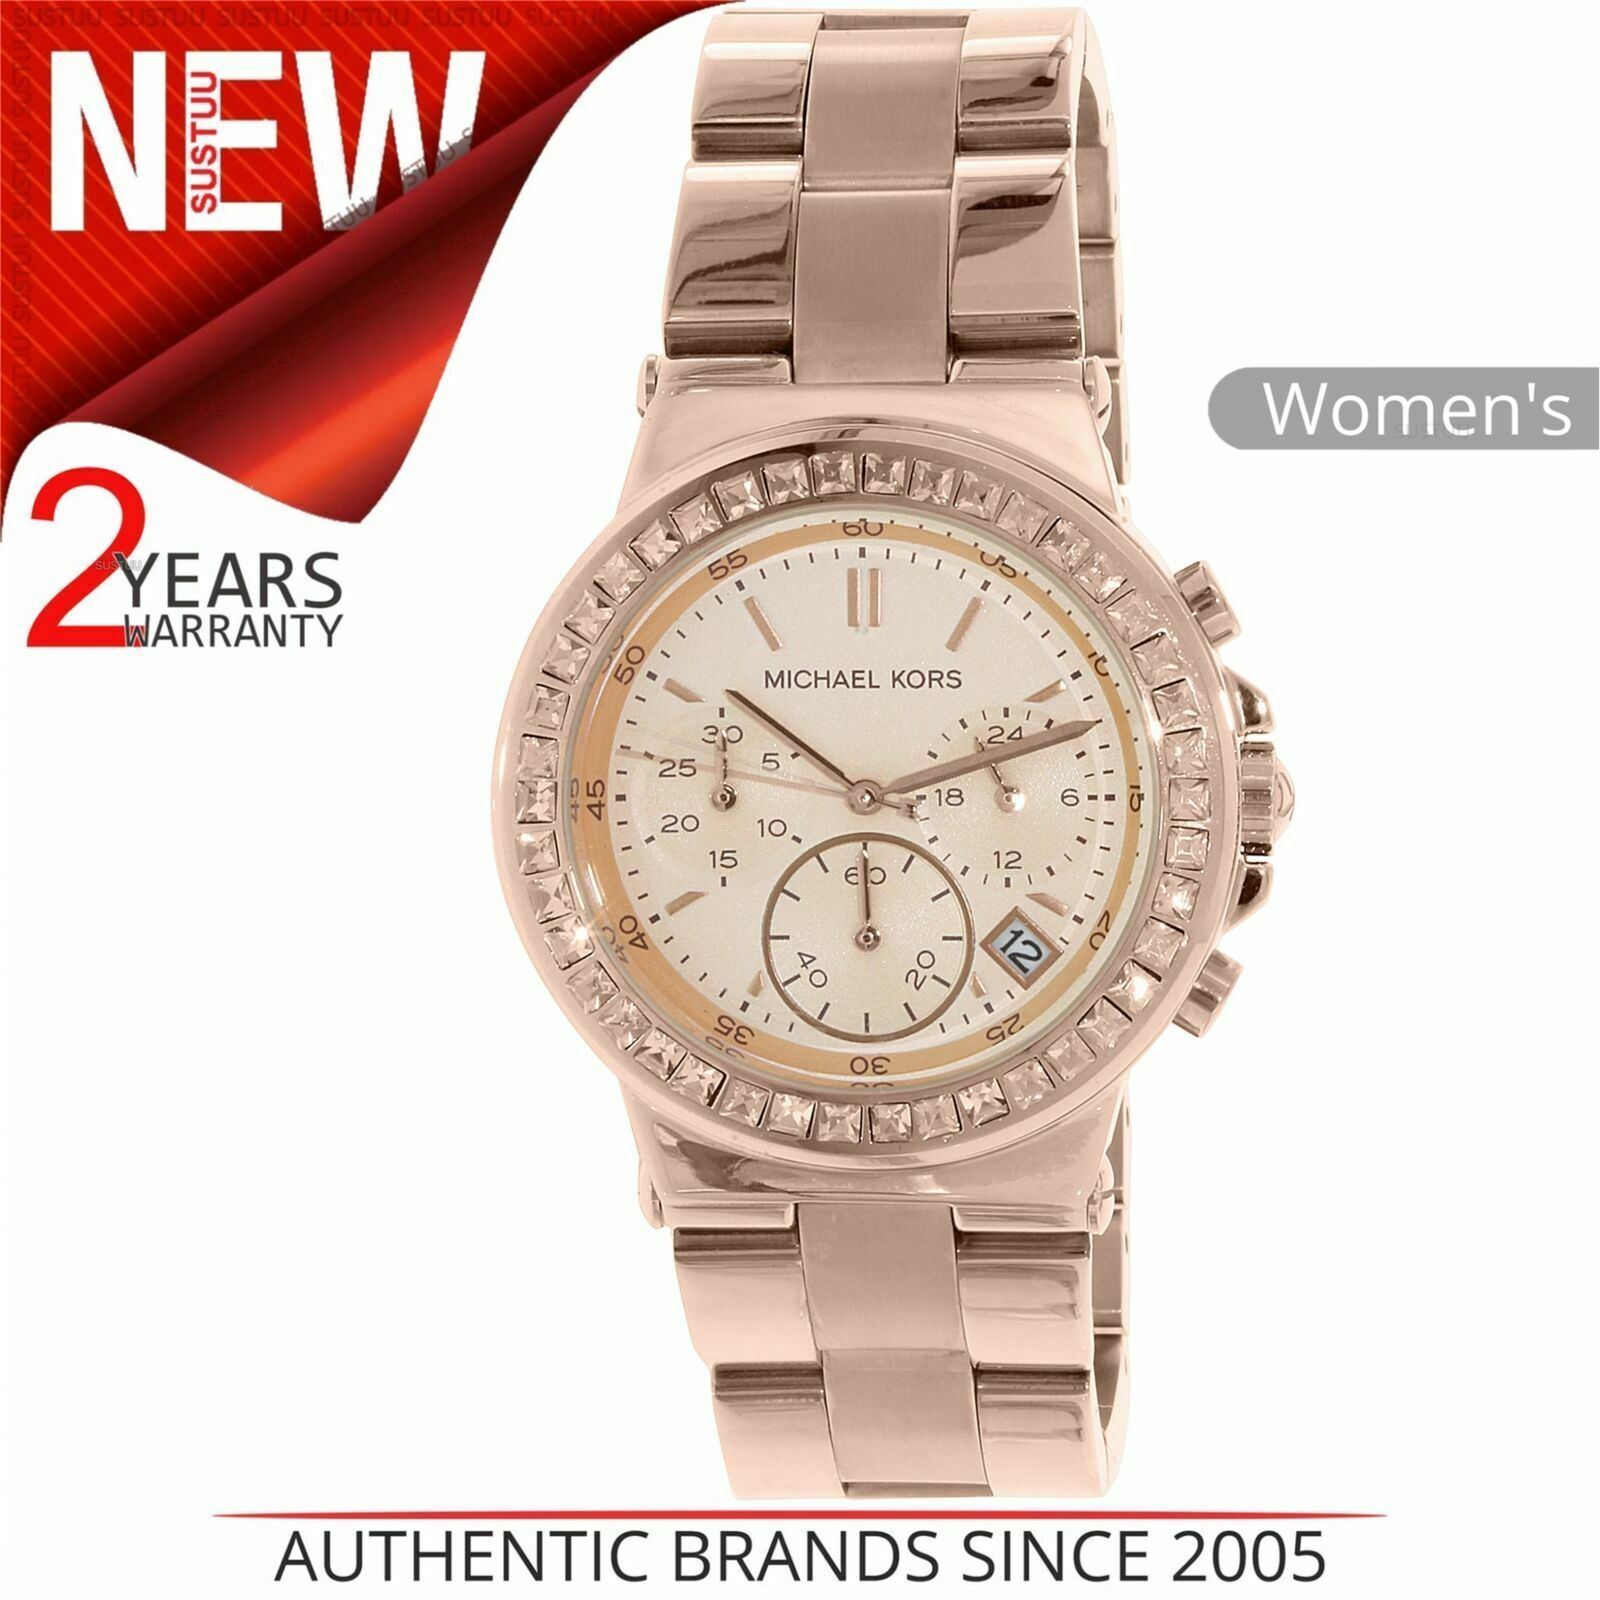 Details about Michael Kors Dylan Ladie's Watch¦Chronograph Dial¦Stainless Steel Band¦MK5586